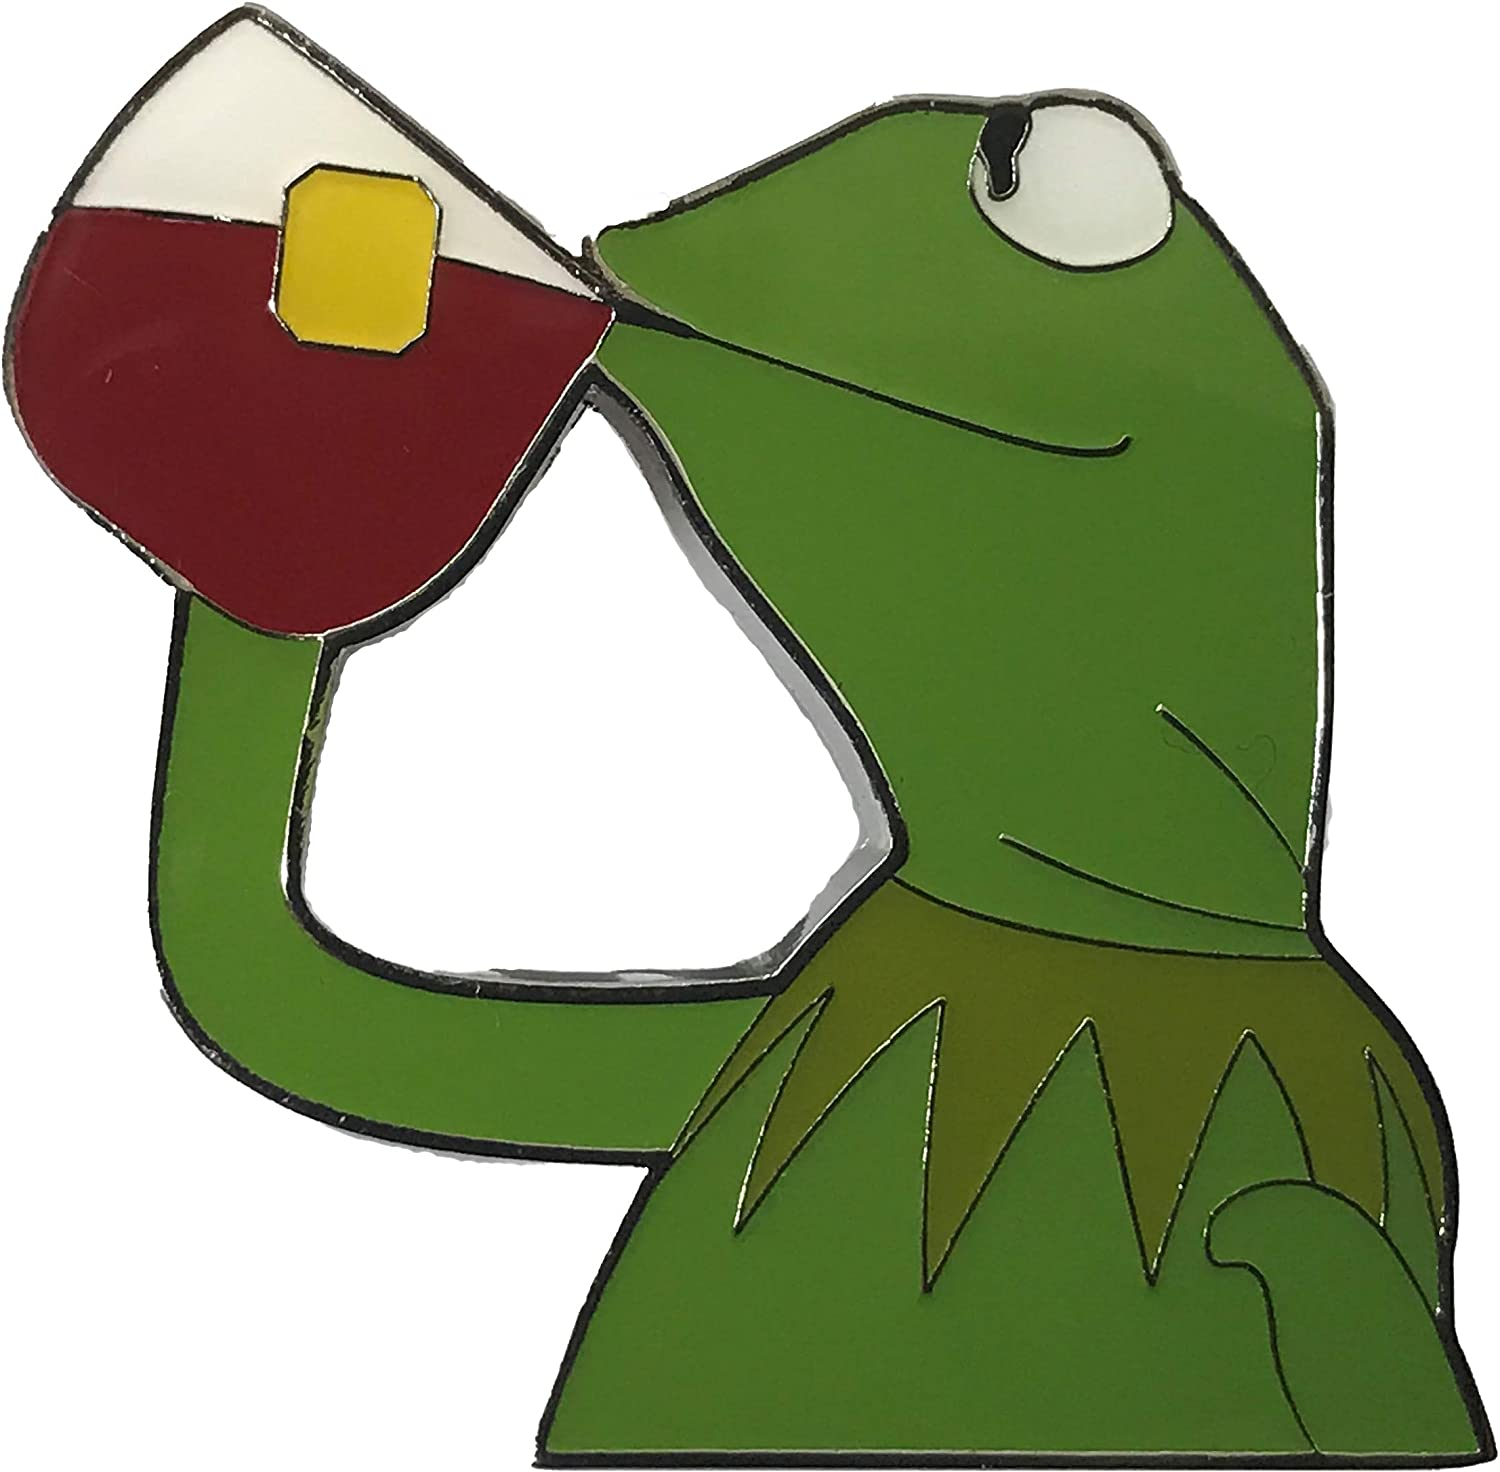 Balanced Co. Kermit None of My Business Enamel Pin Kermit Pin Kermit Sipping Tea Lapel Pin